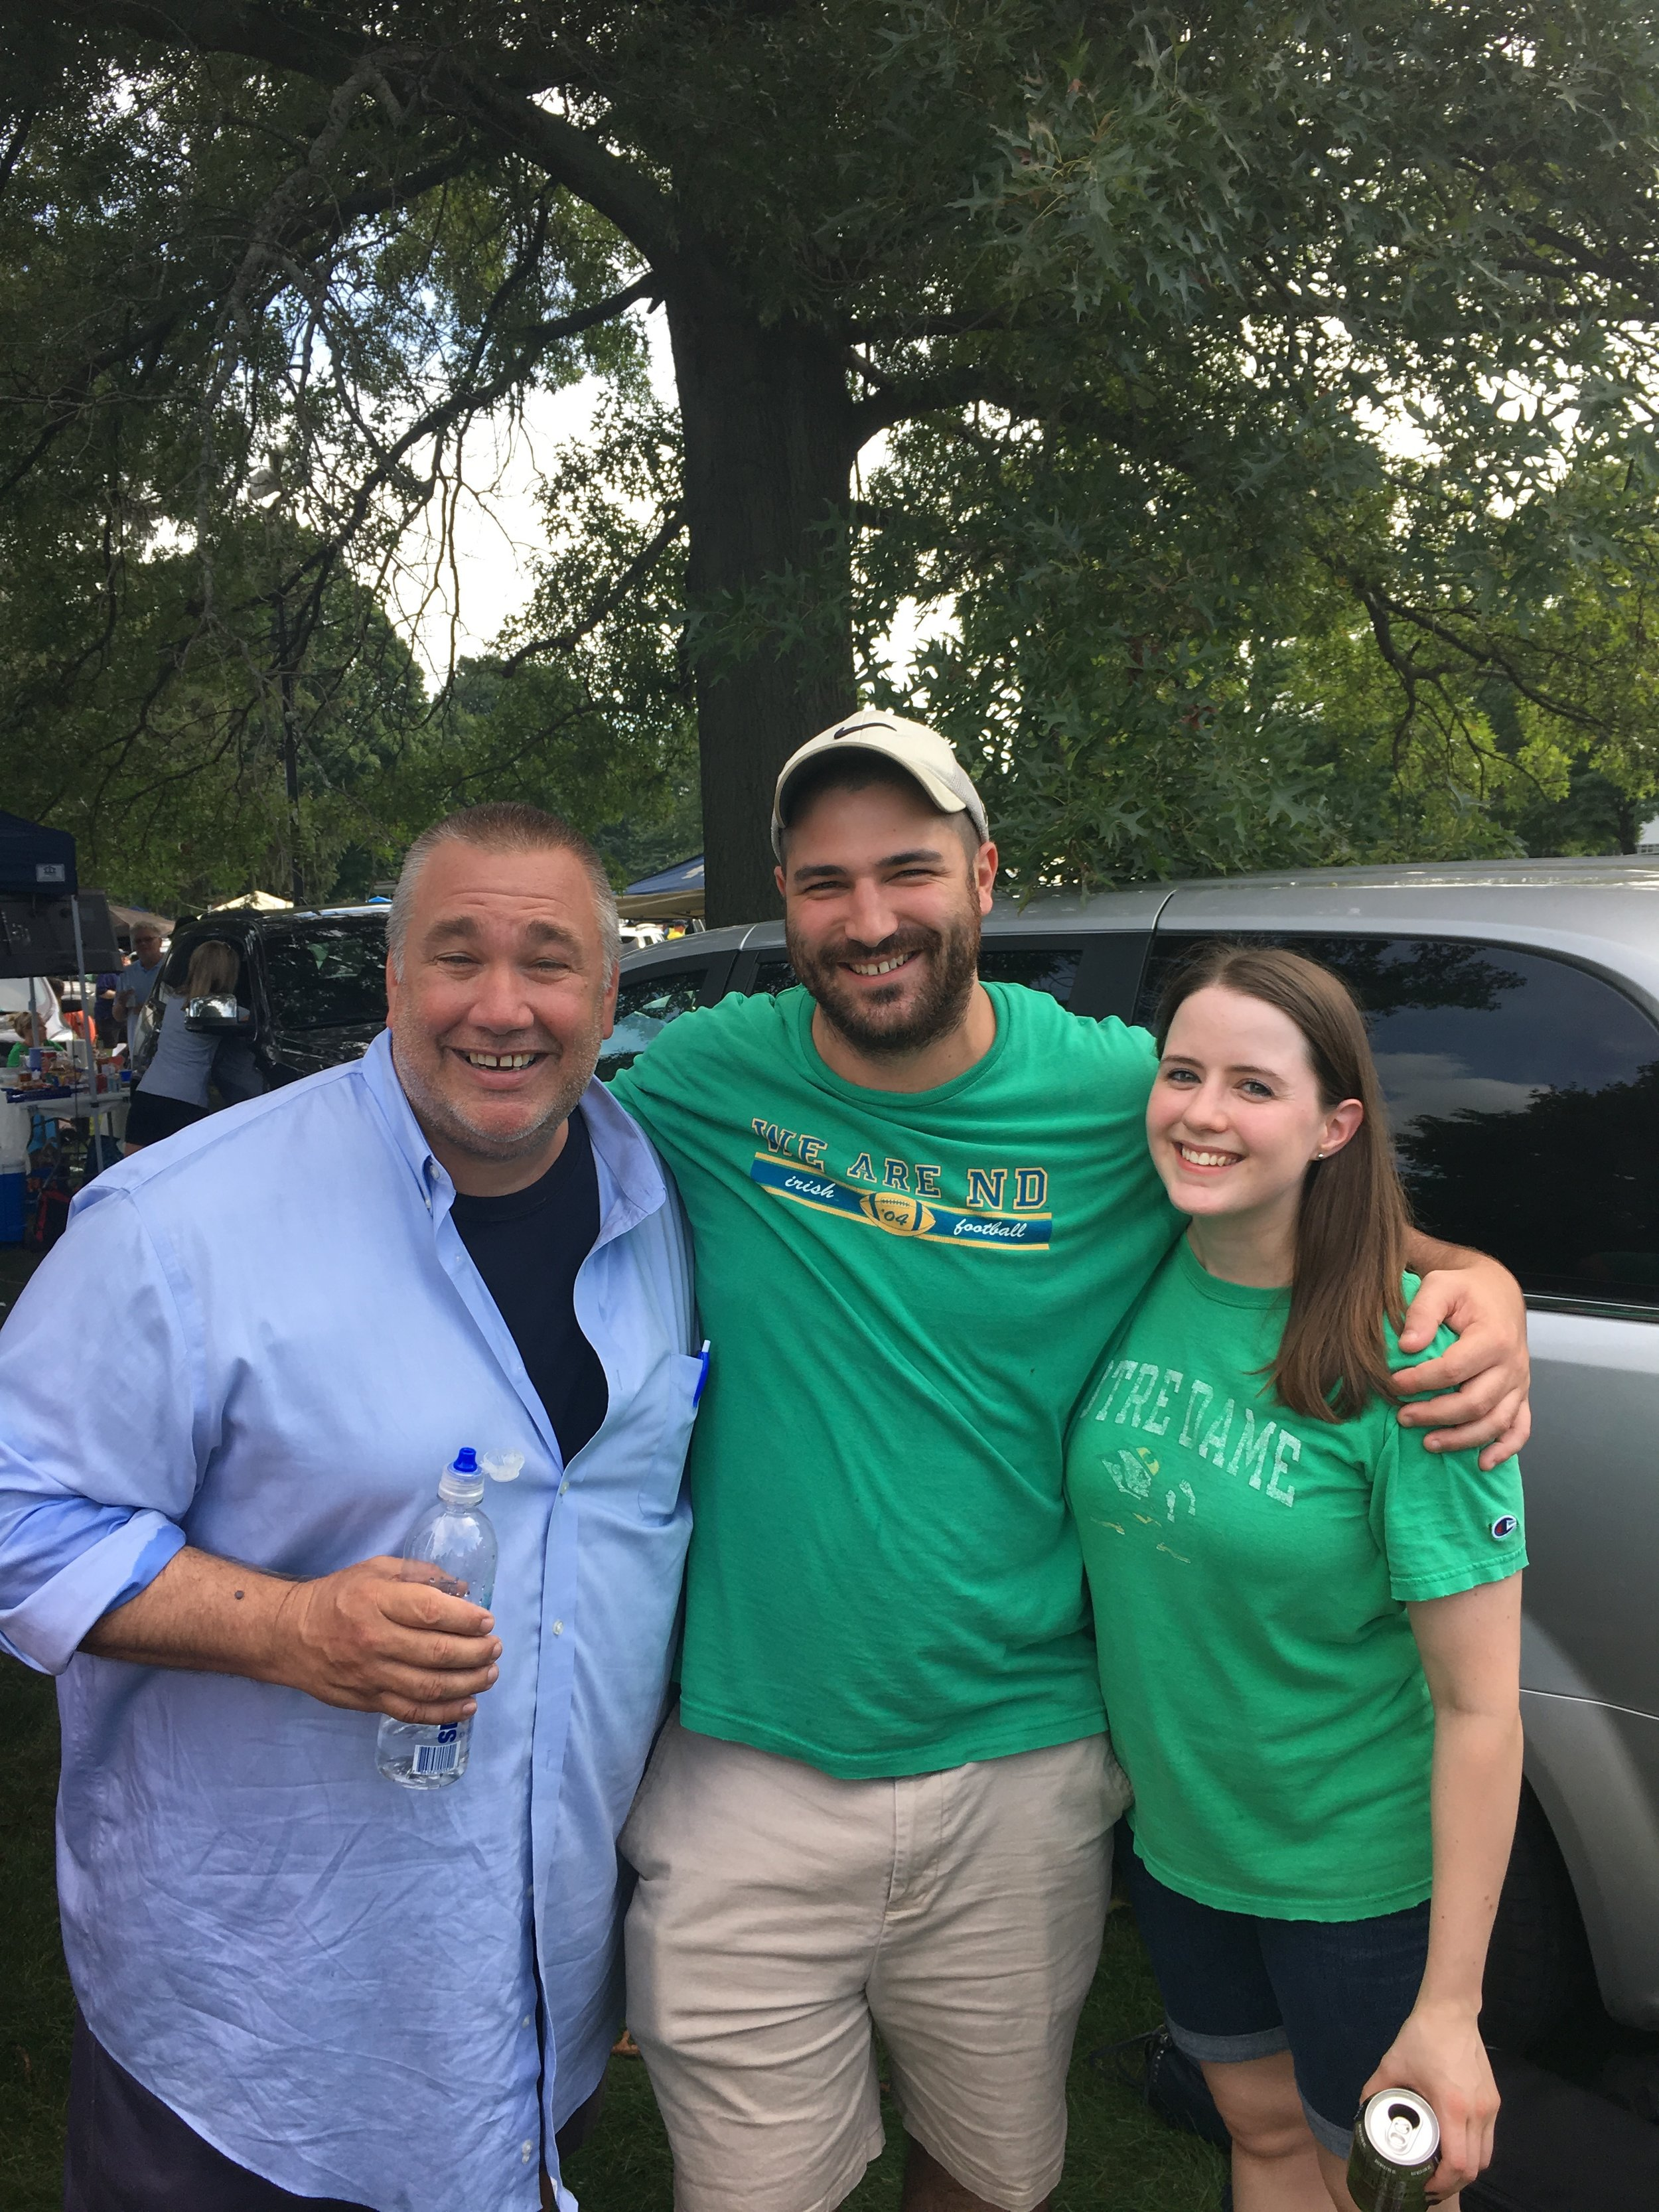 Boxcar Krillenberger, Dillon, and Megan tailgating at Notre Dame in South Bend.